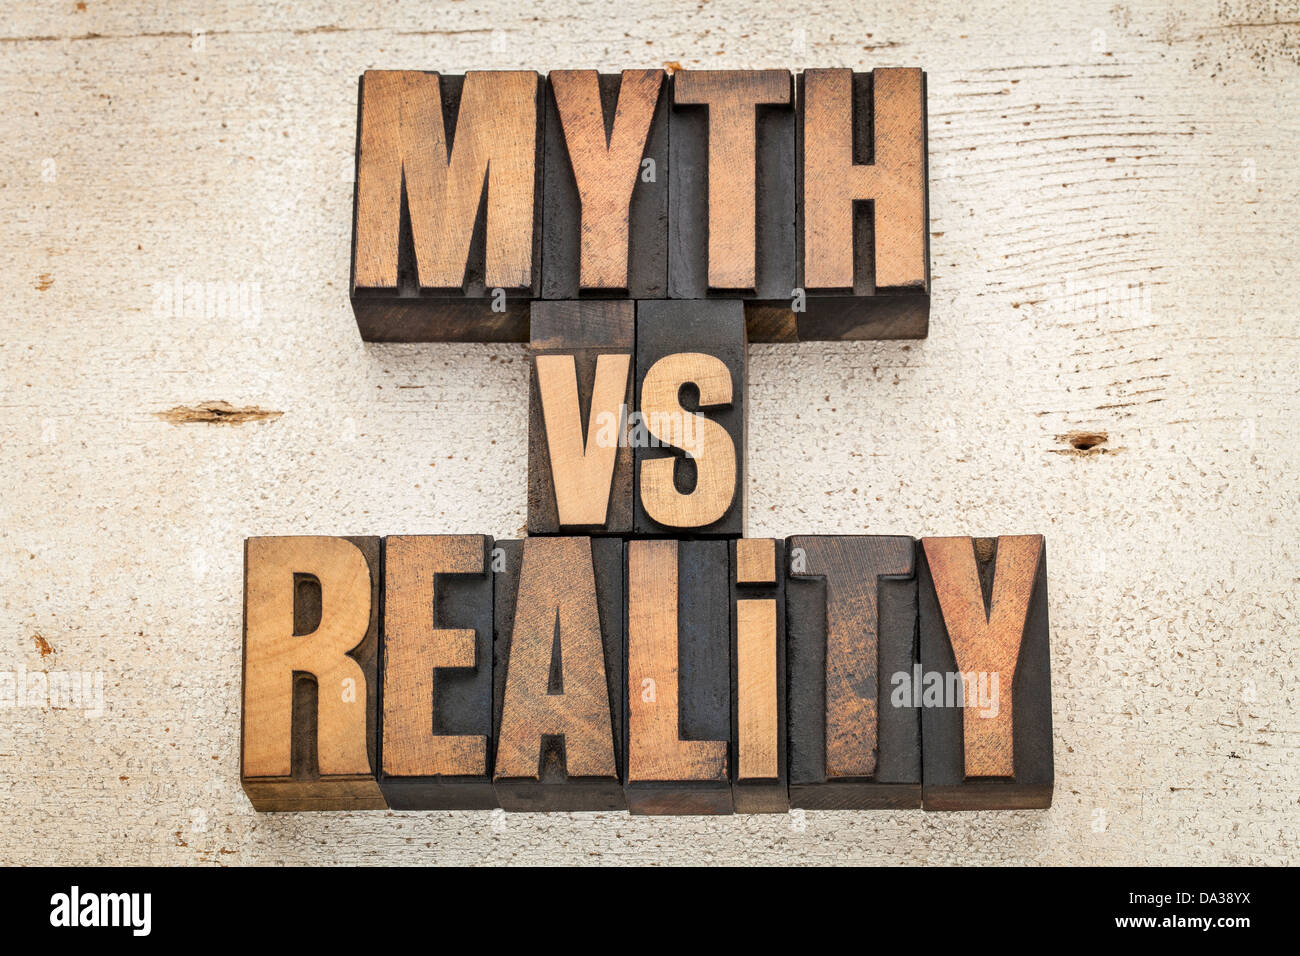 myth versus reality - concept in vintage letterpress wood type on a grunge painted barn wood background - Stock Image